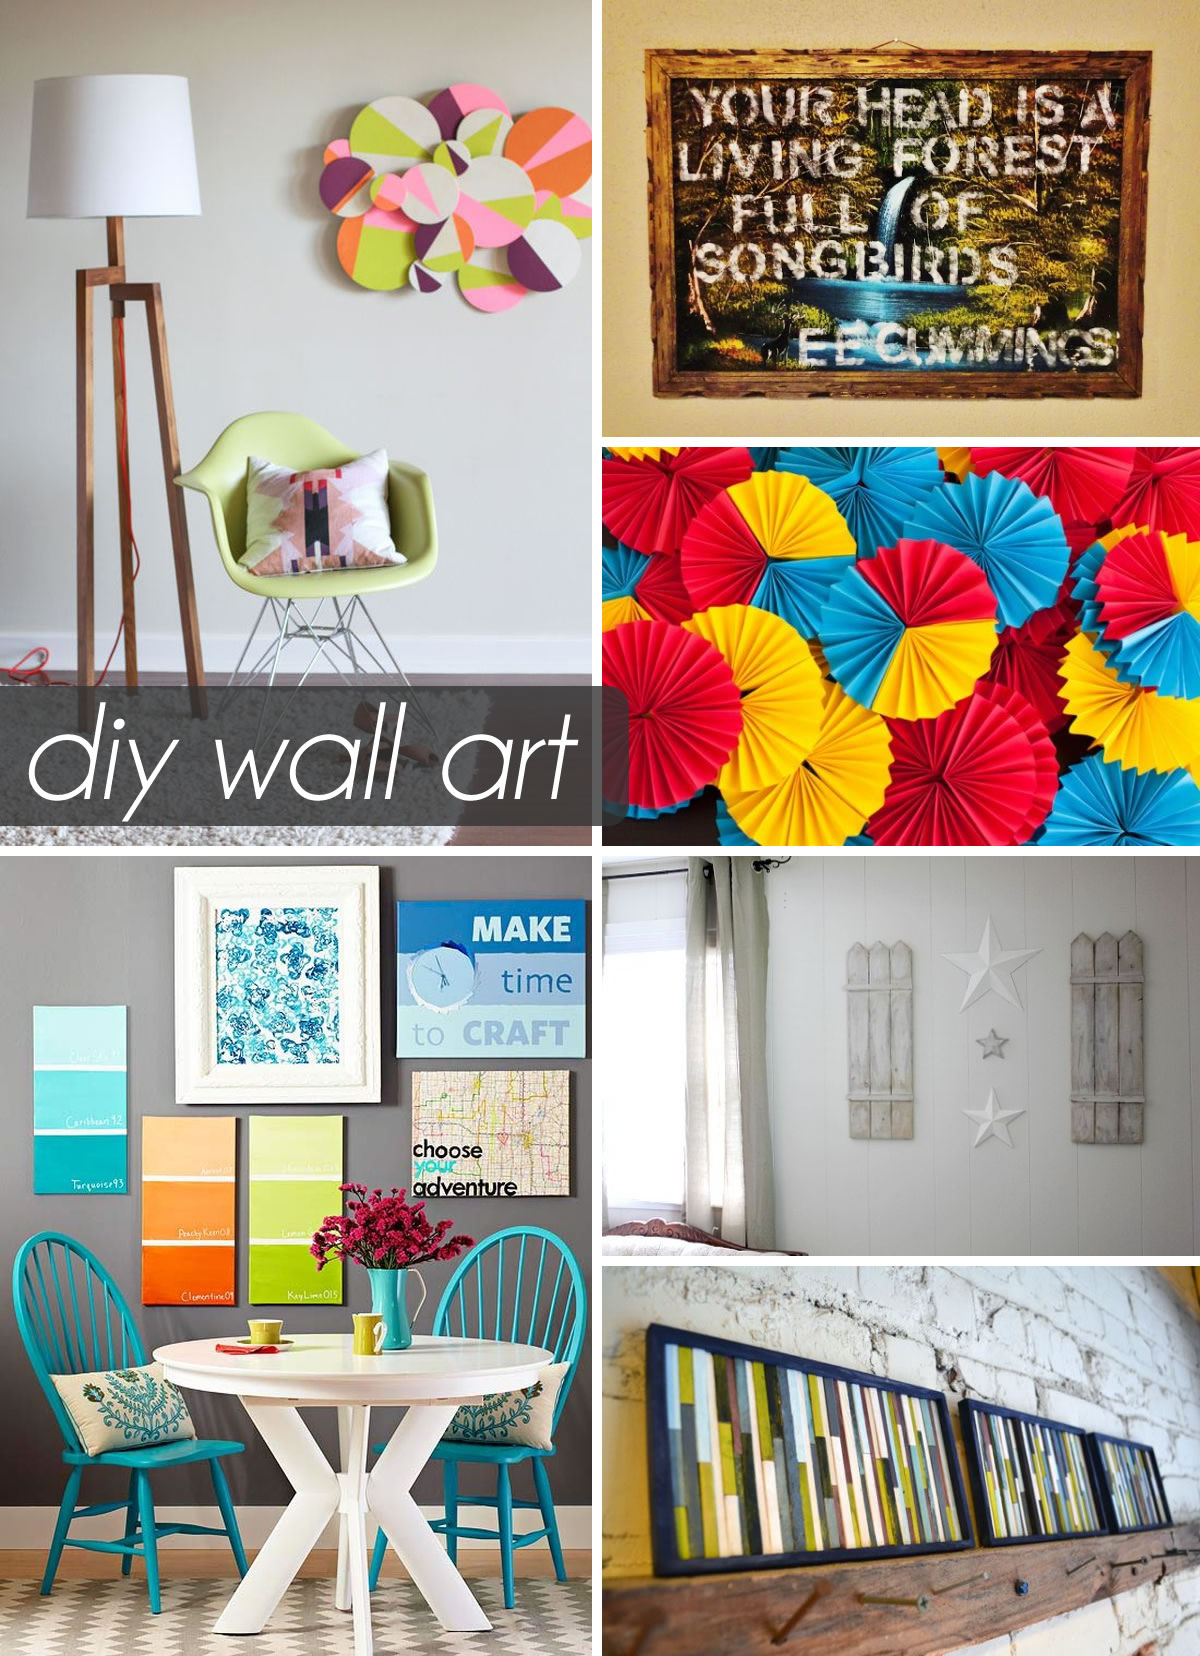 Ways To Decorate Your Walls boats bedroom ptm 50 Beautiful Diy Wall Art Ideas For Your Home